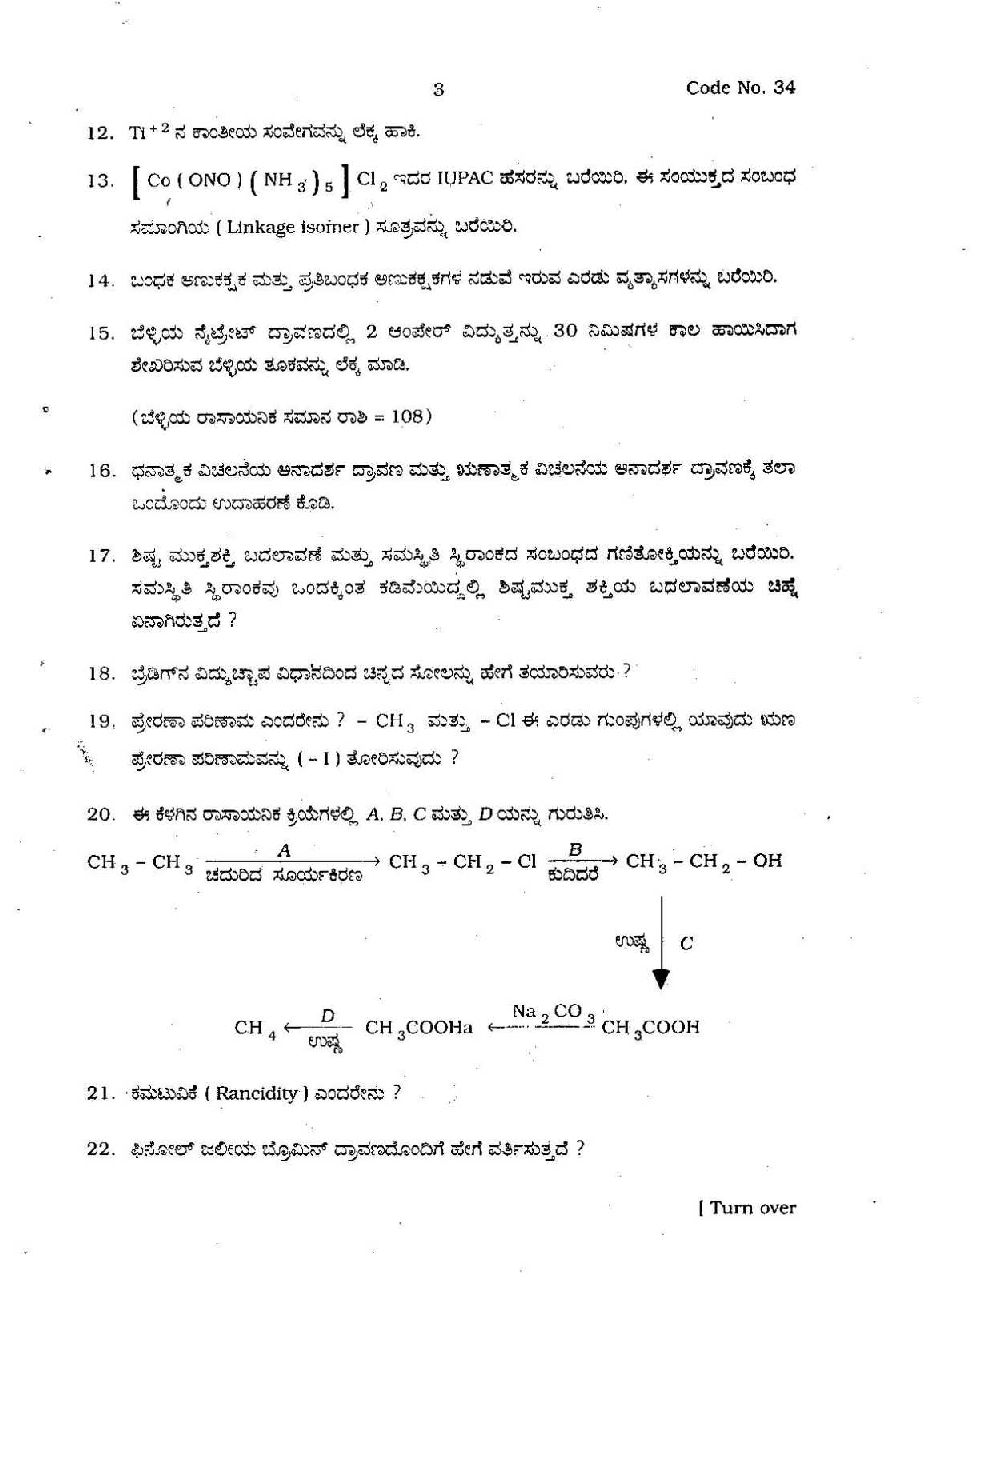 kannada essay on desertification in karnataka state Essay on karnataka state in kannada language u of t creative writing contest abril 15, 2018 uncategorized no comments writing an essay on a controversial.